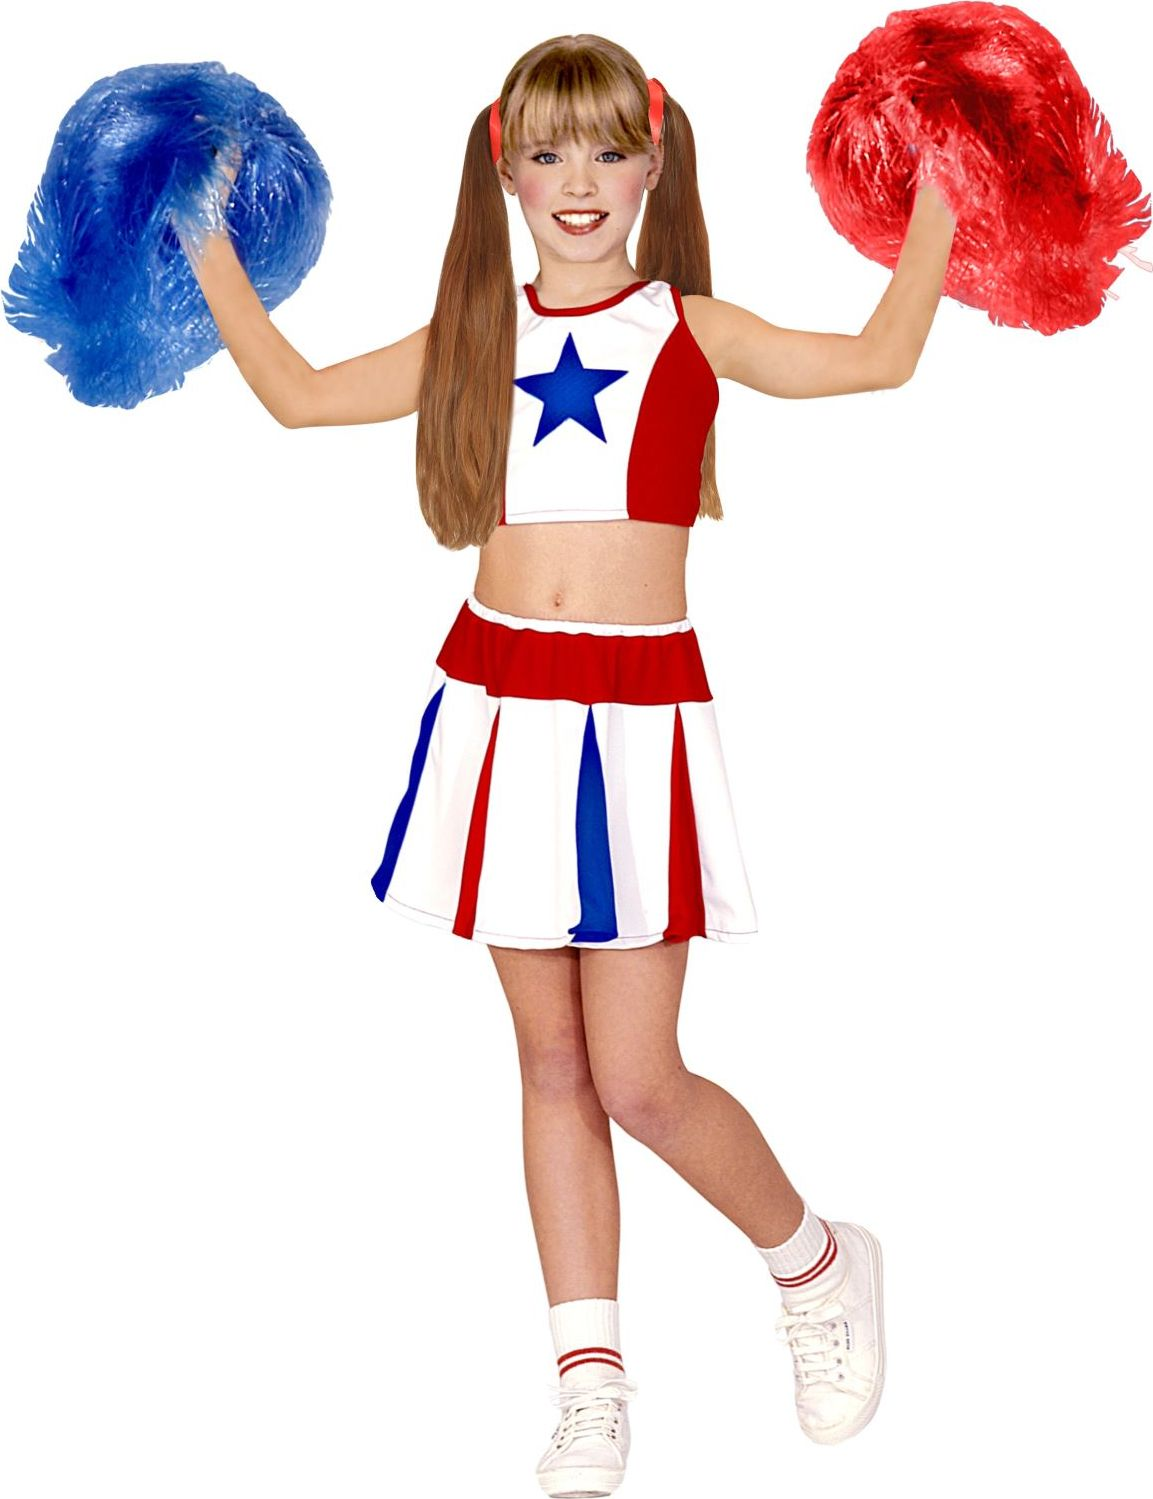 Cheerleader kostuum kind